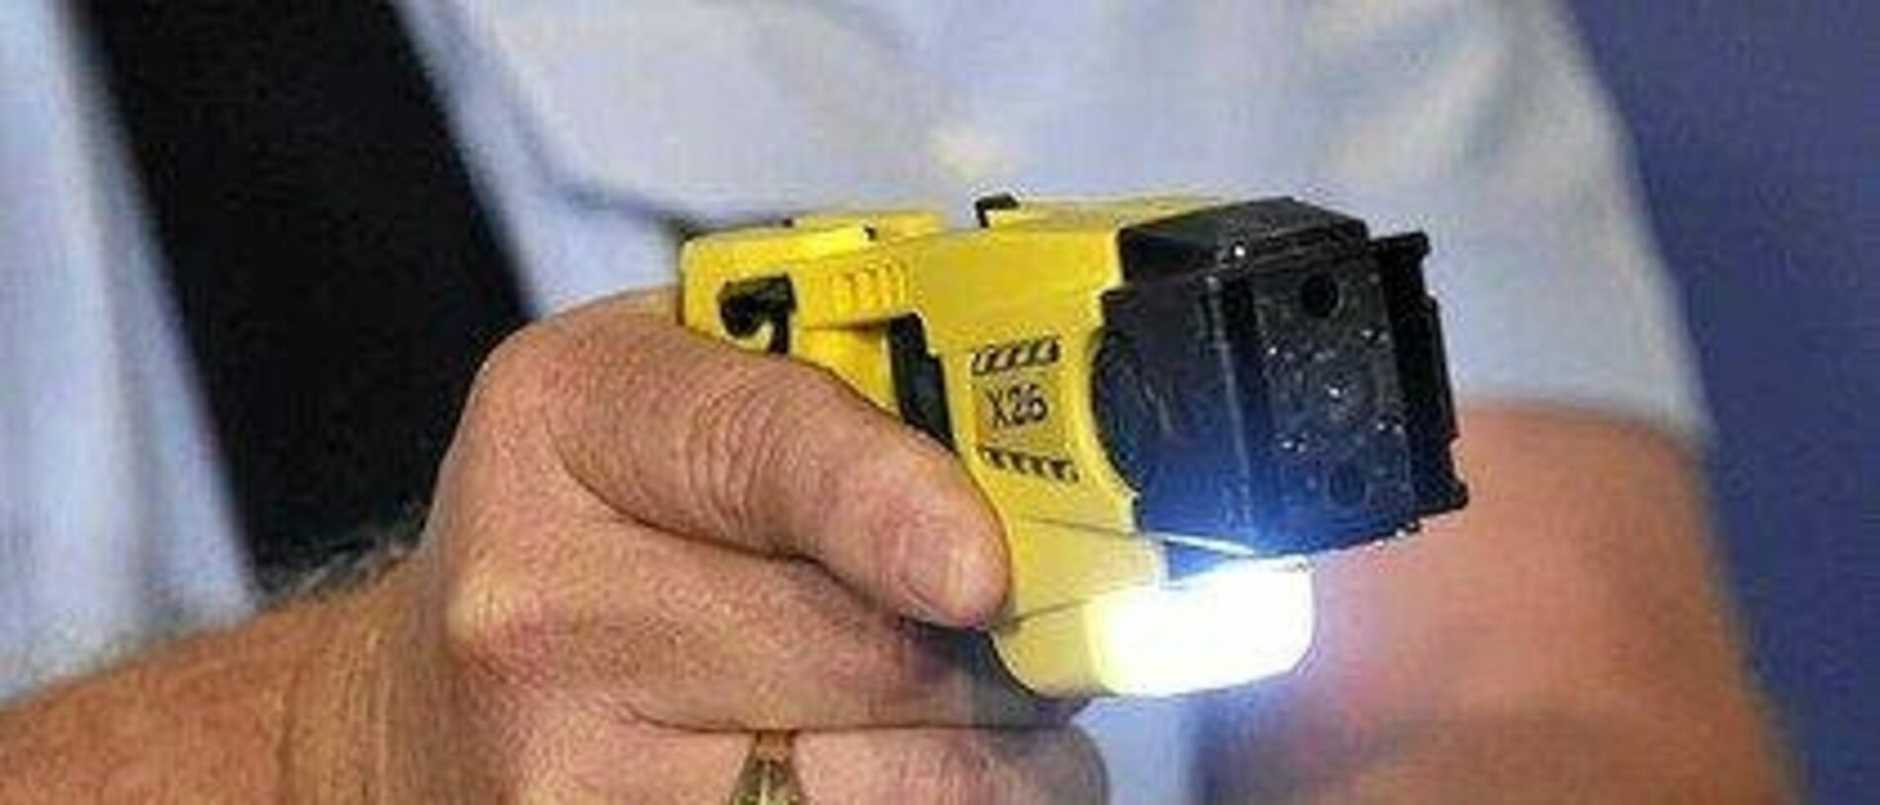 Police were forced to use their taser on a 24-year-old Bonalbo man.